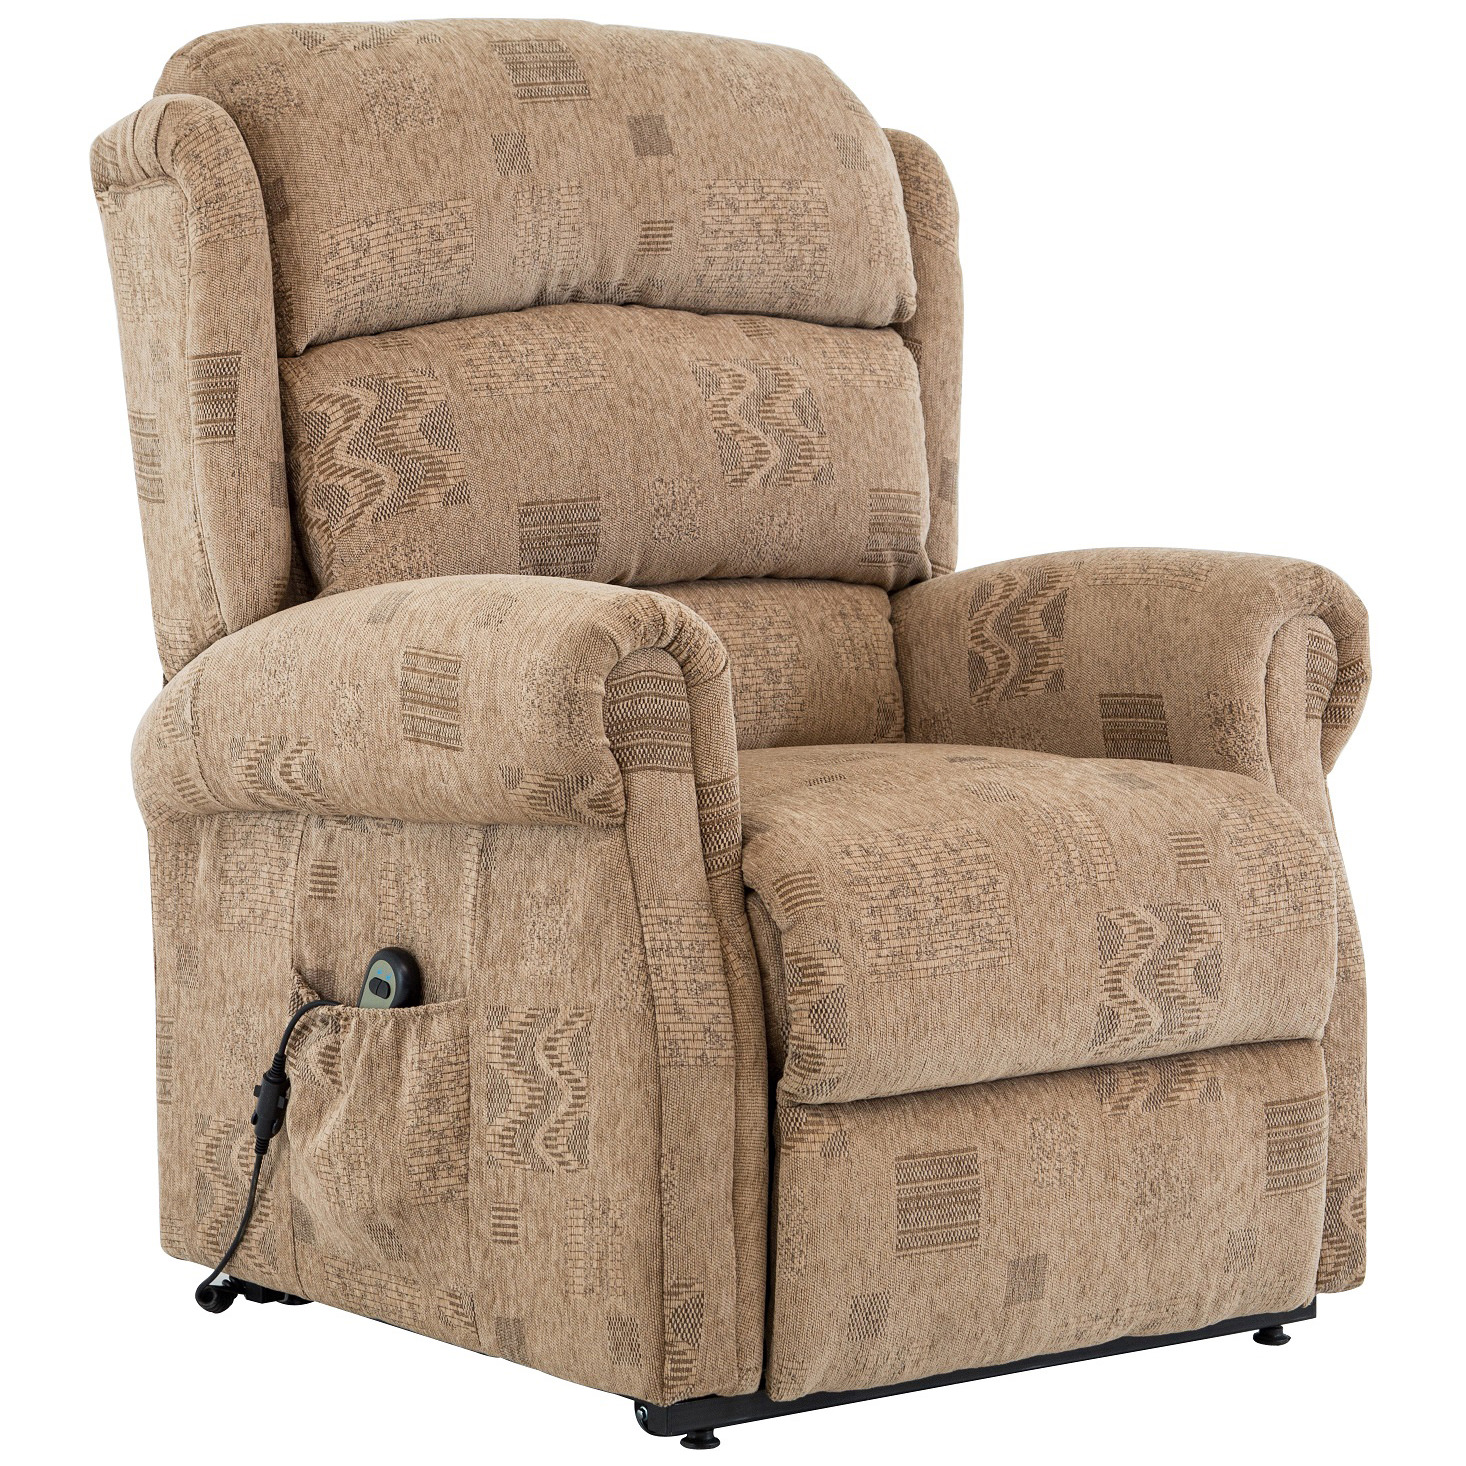 Description Wheat fabric mobility rise and recline